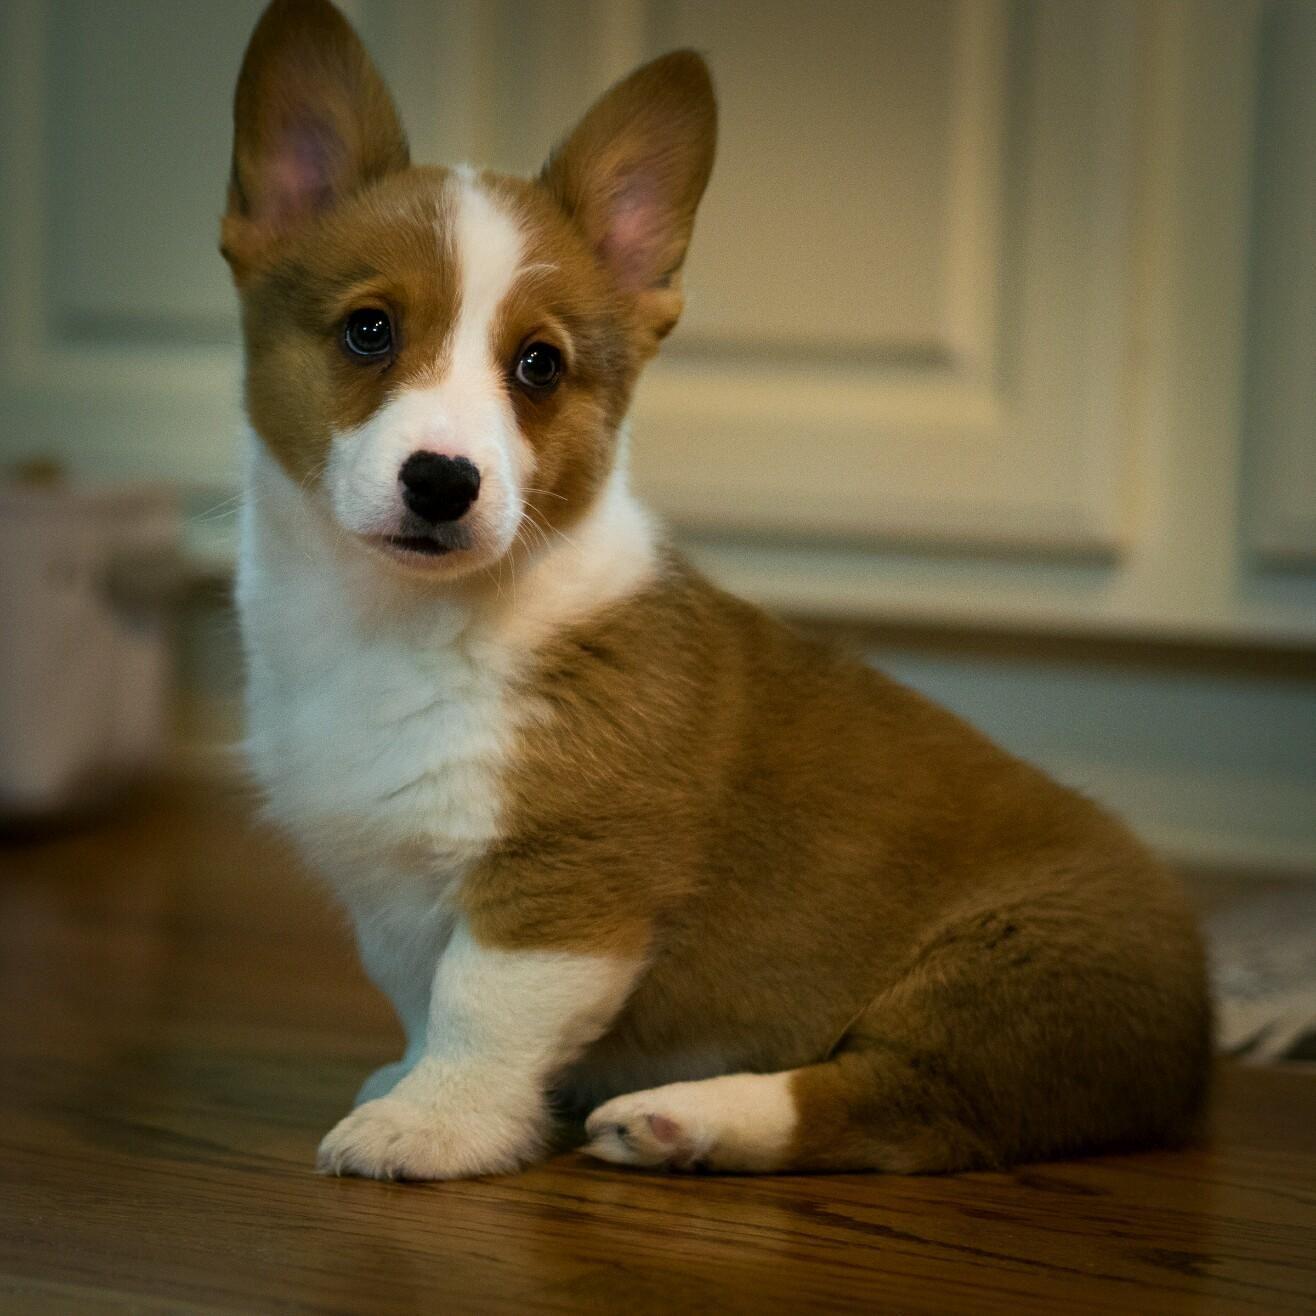 The Young Pupper http://ift.tt/2qOFEgo